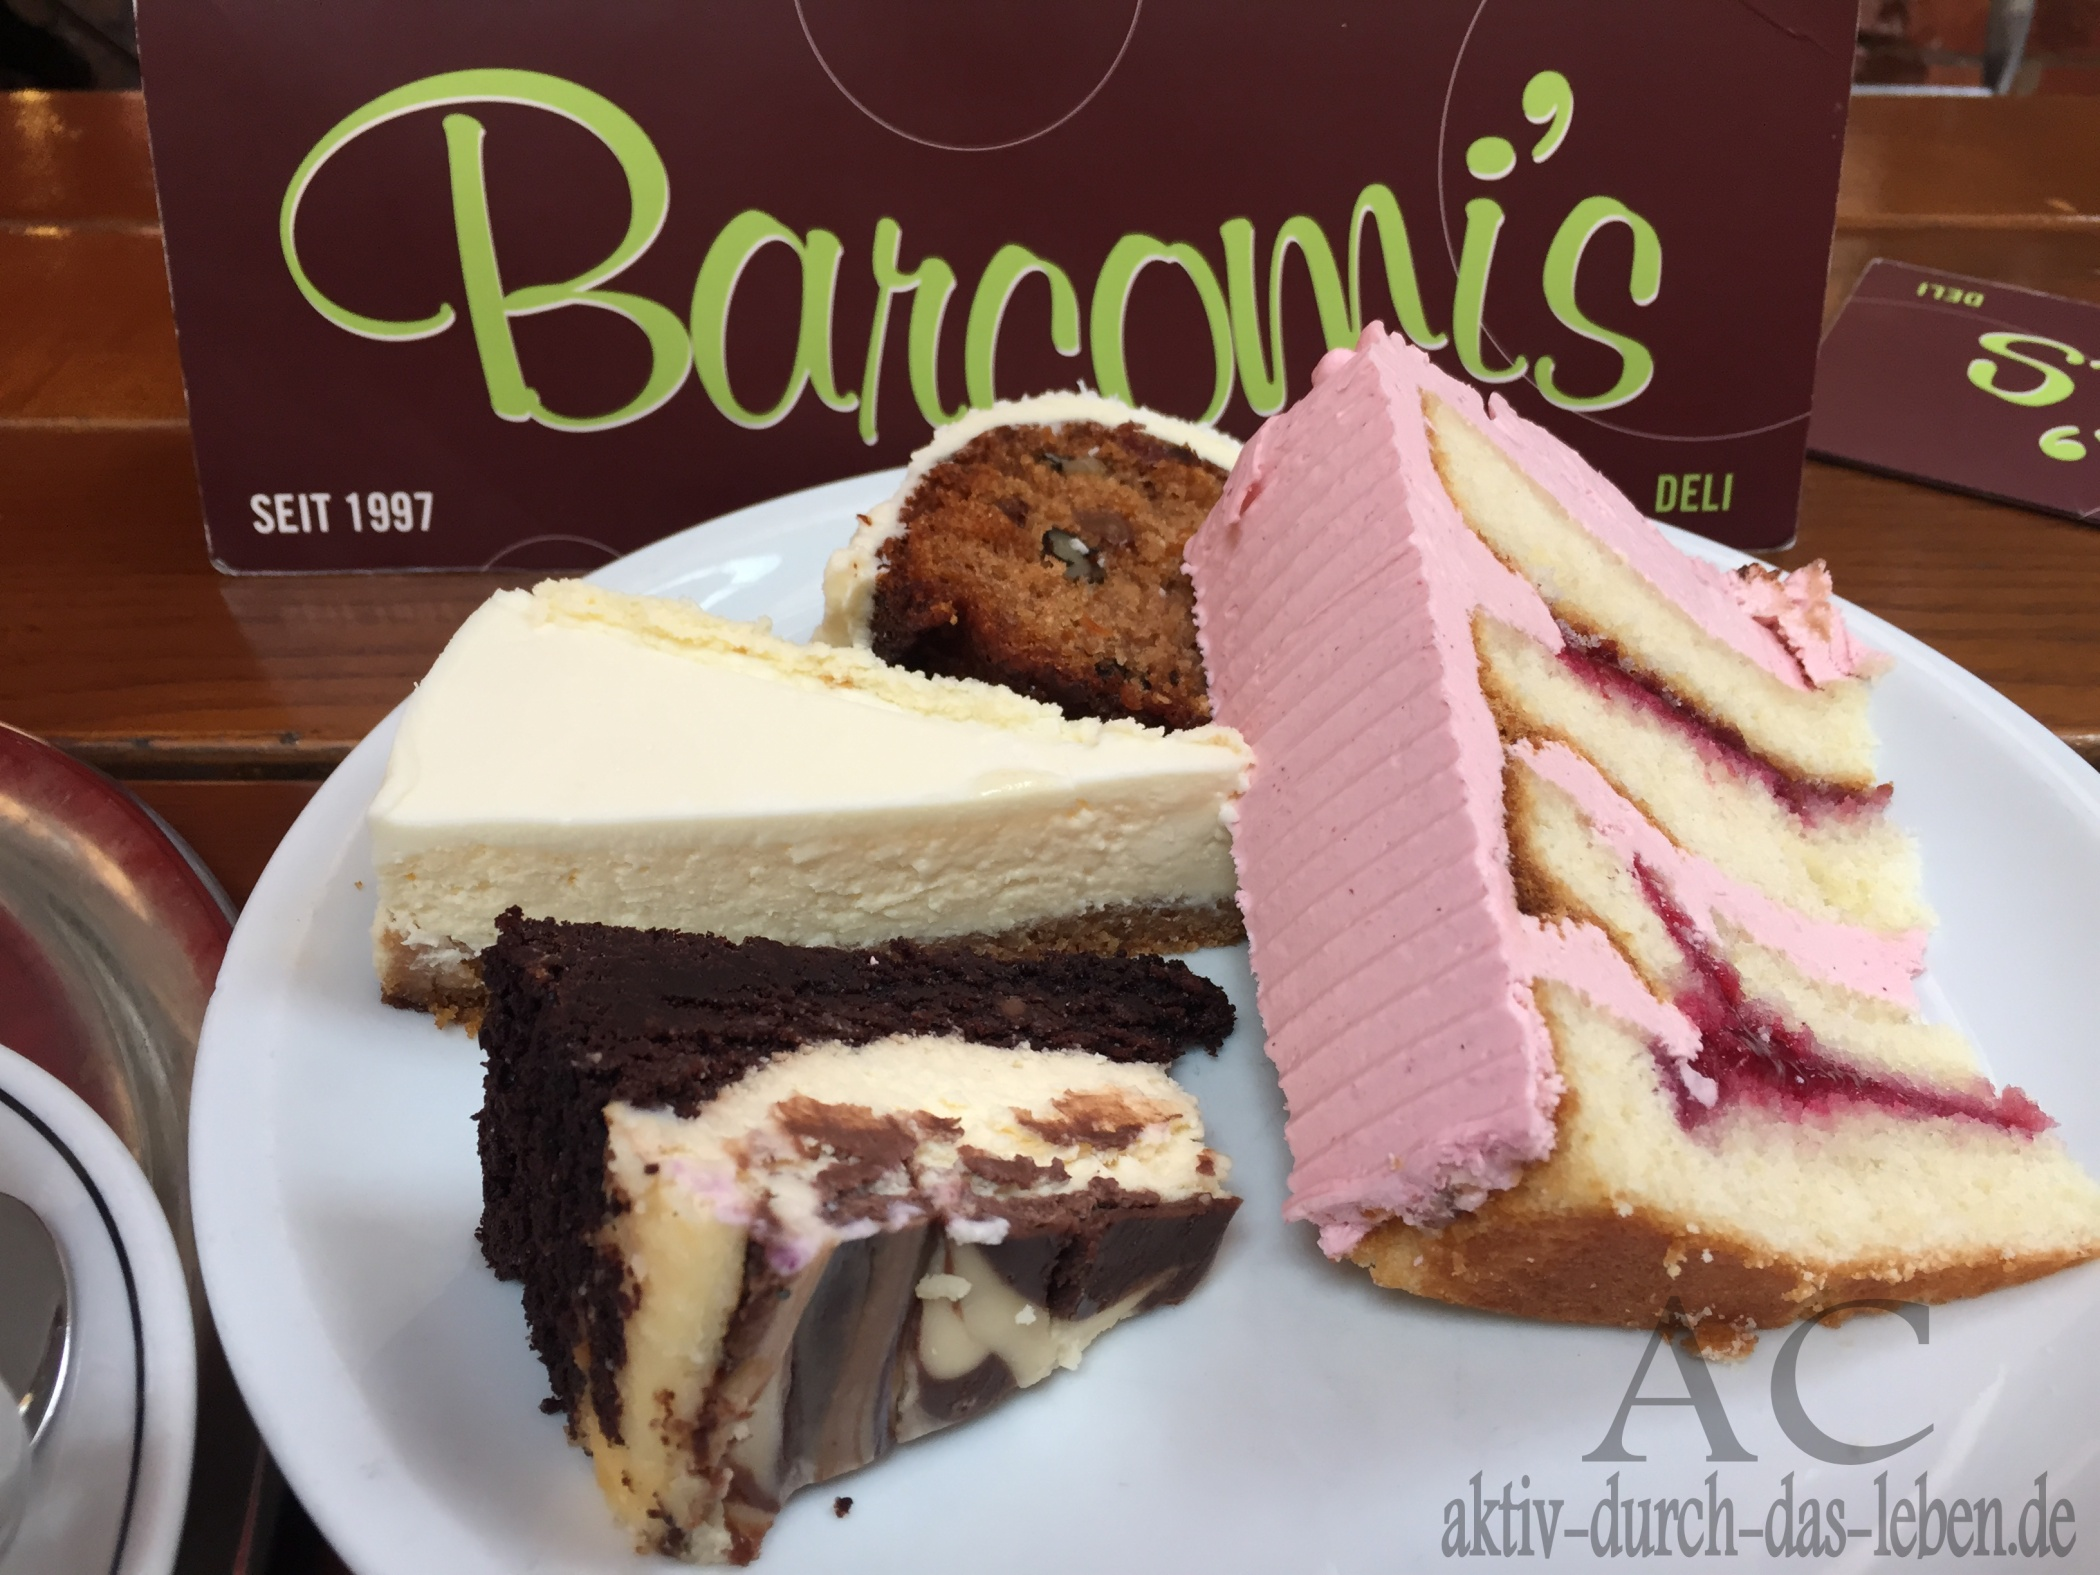 Cheesecake, Carrot Cake, Himbeer Ganache Cake und Brownie Marble Cheesecake